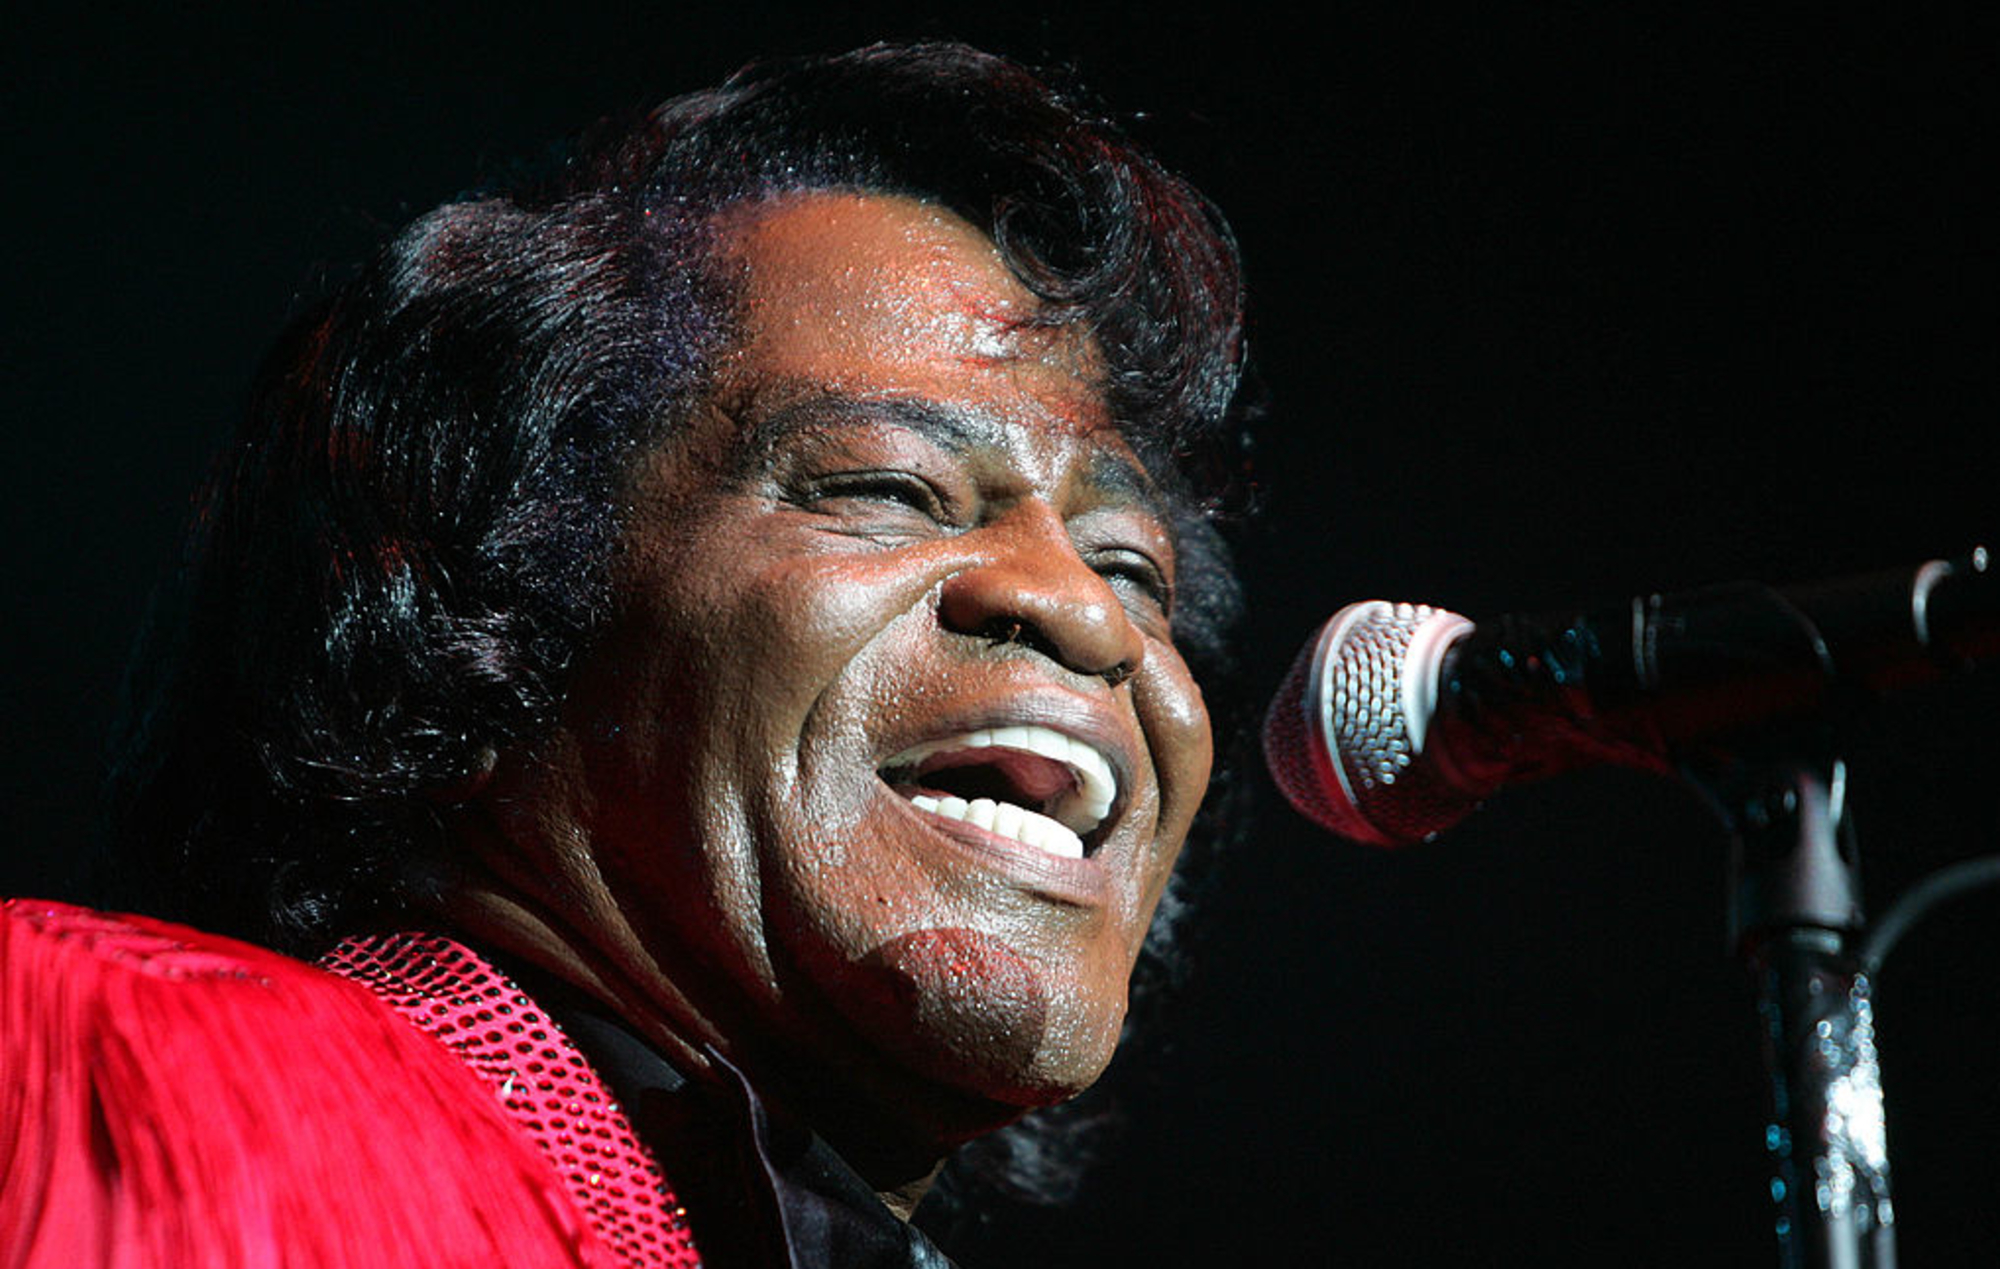 James Brown murder claims could be investigated 14 years after death